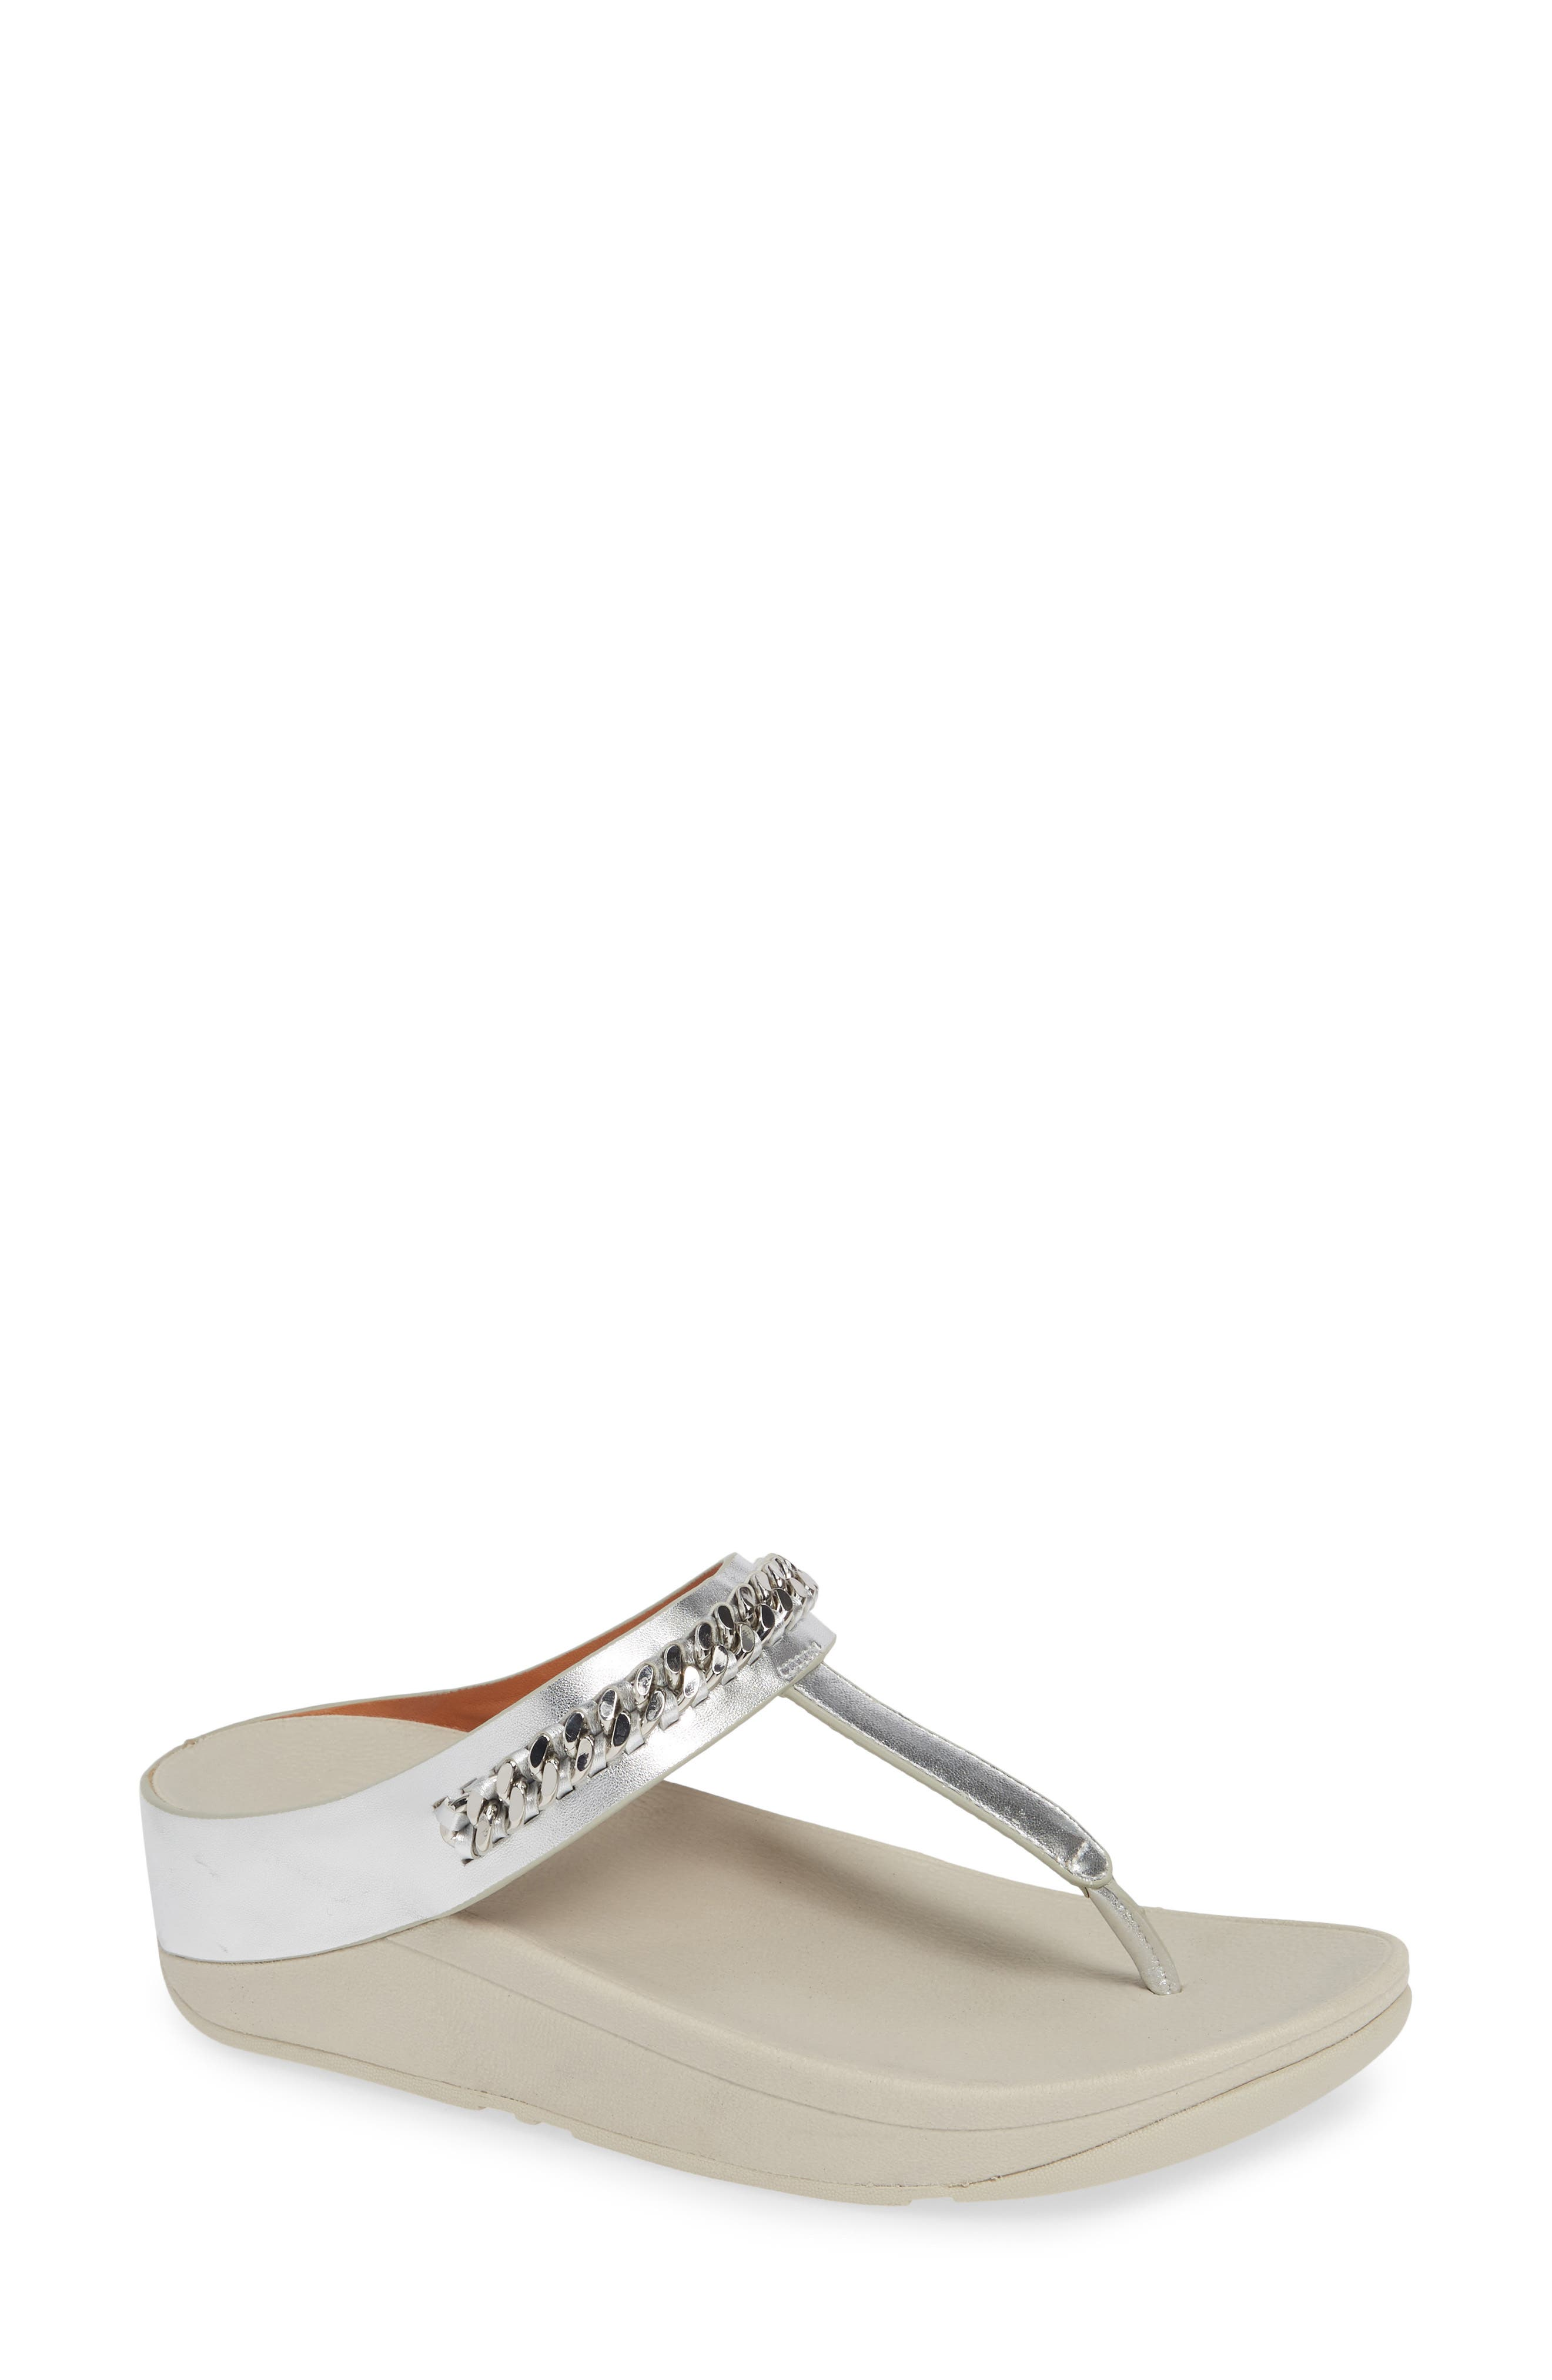 FITFLOP Fino Flip Flop in Silver Leather